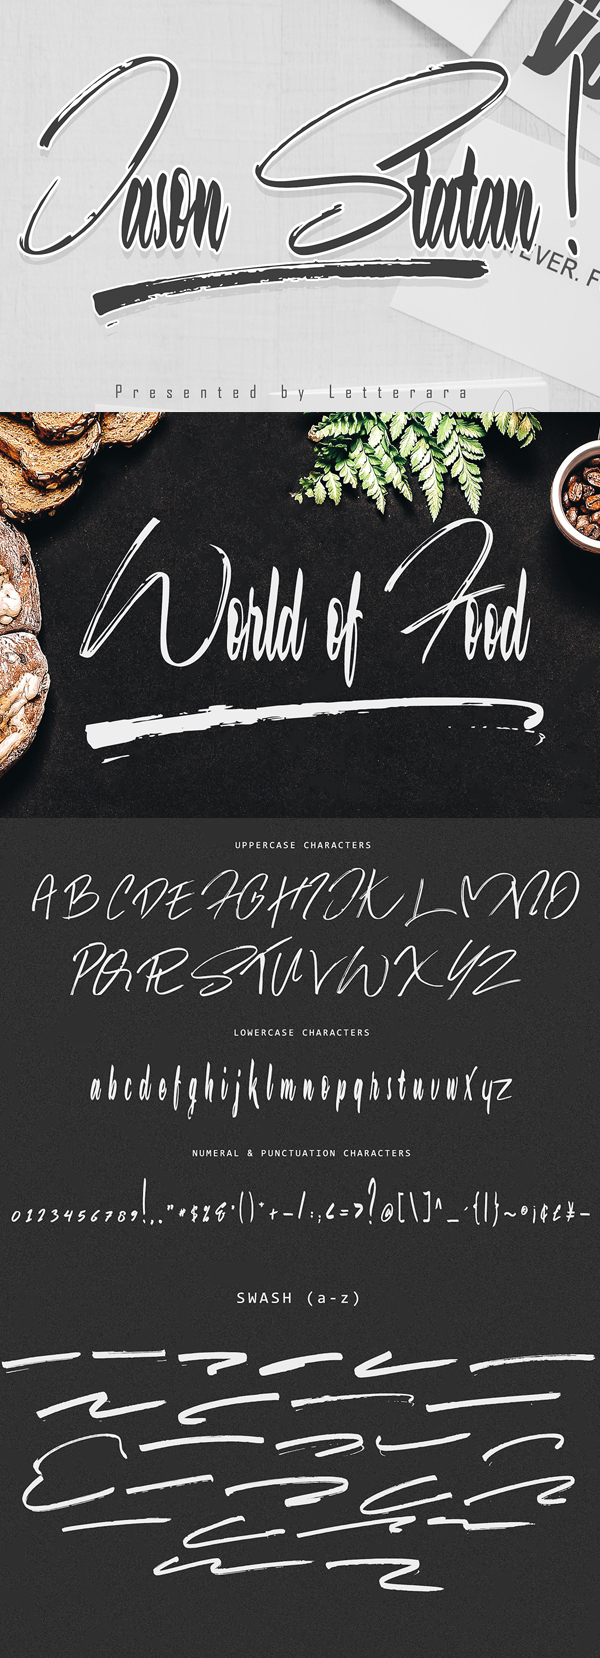 Jason Statan Brush Free Font Font